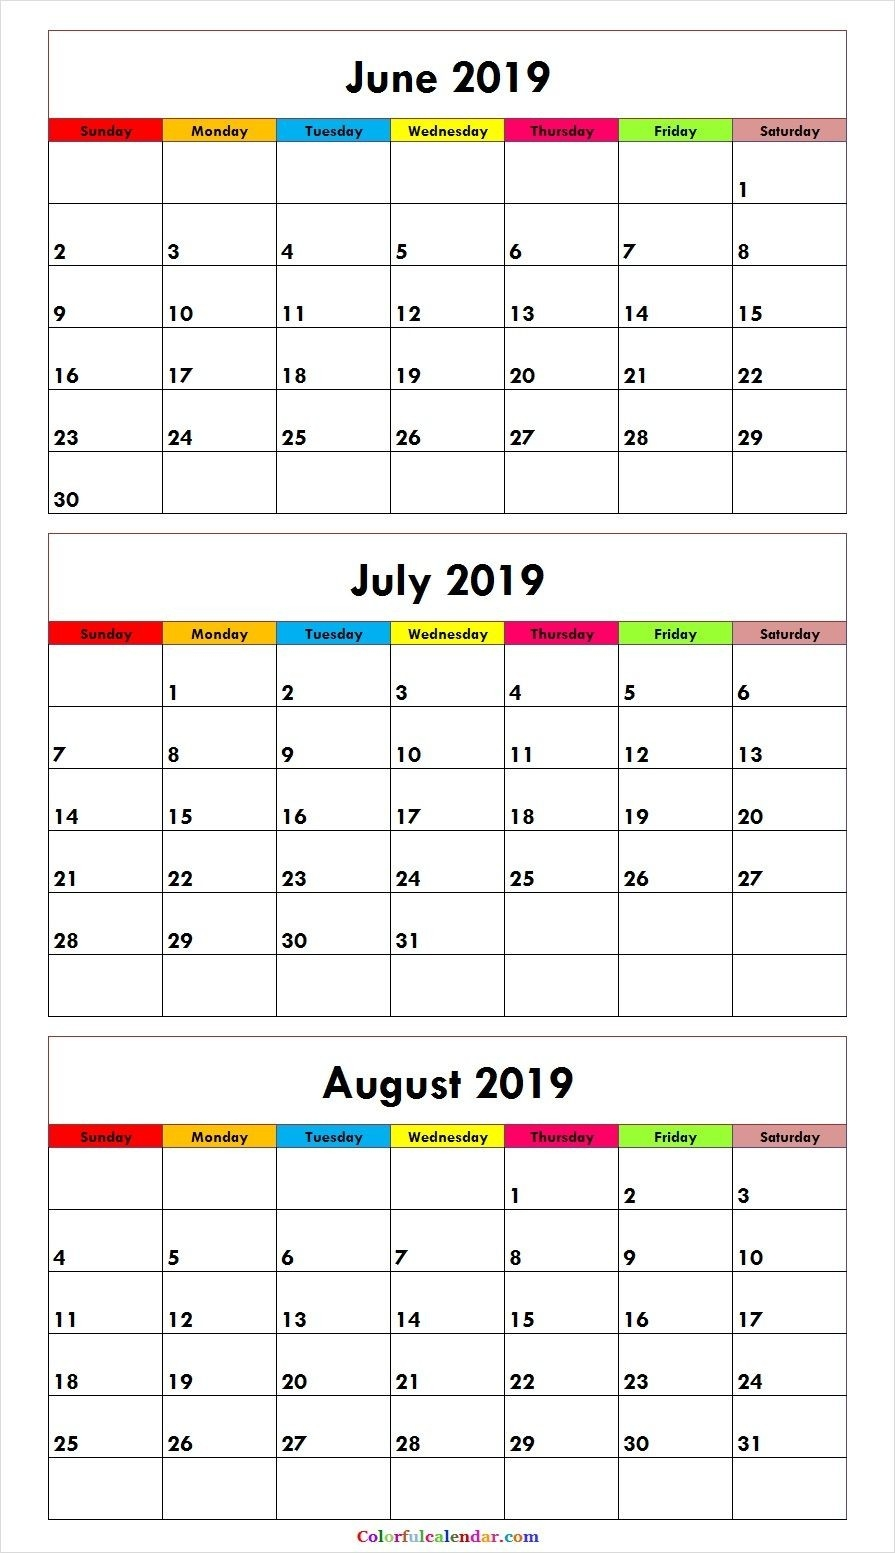 New Cute June July August 2019 Calendar Design (With Images-Blank Printable June July Augest Calendars